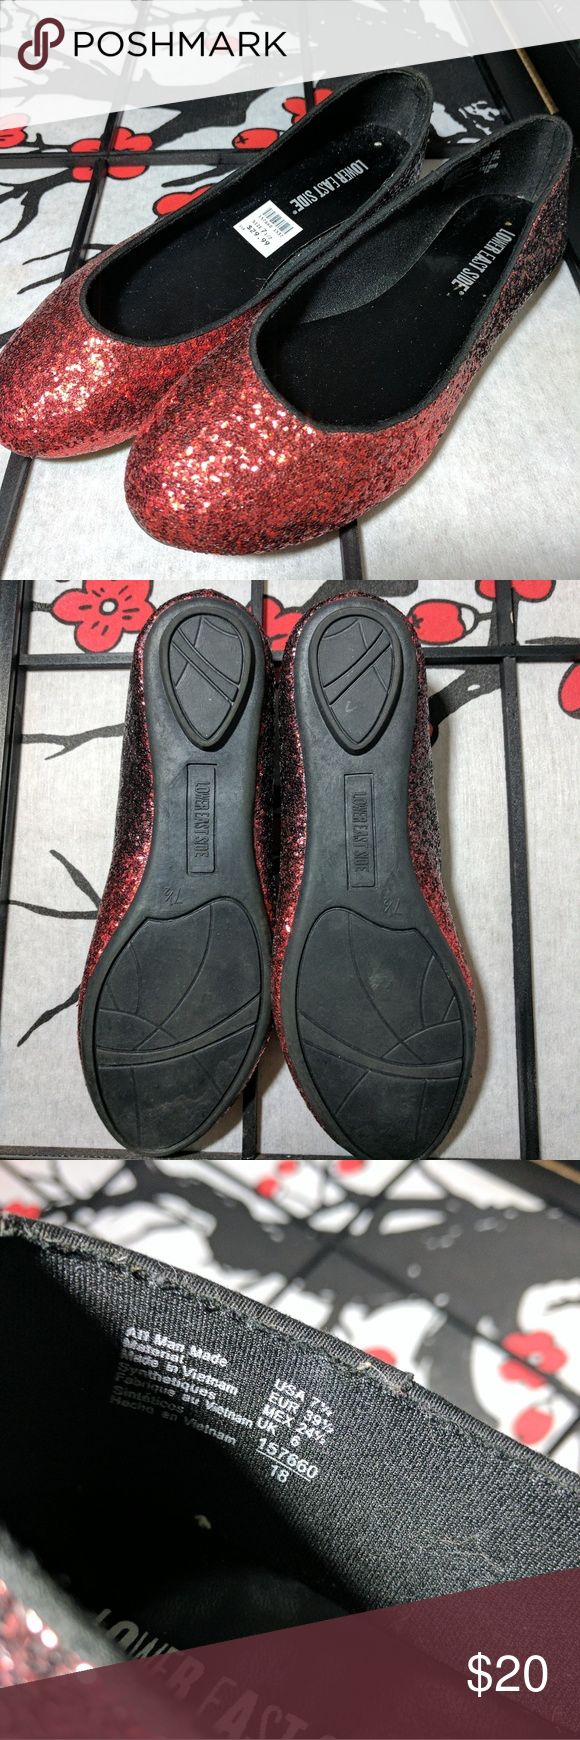 ✴️✴️✴️NWT Super Cute Cherry Red Flats✴️✴️✴️ Lower East Side sparkly flats. All man made material. Never worn, size 7.5  Fits more like a size 7. Thank you for shopping my closet!! Lower East Side Shoes Flats & Loafers